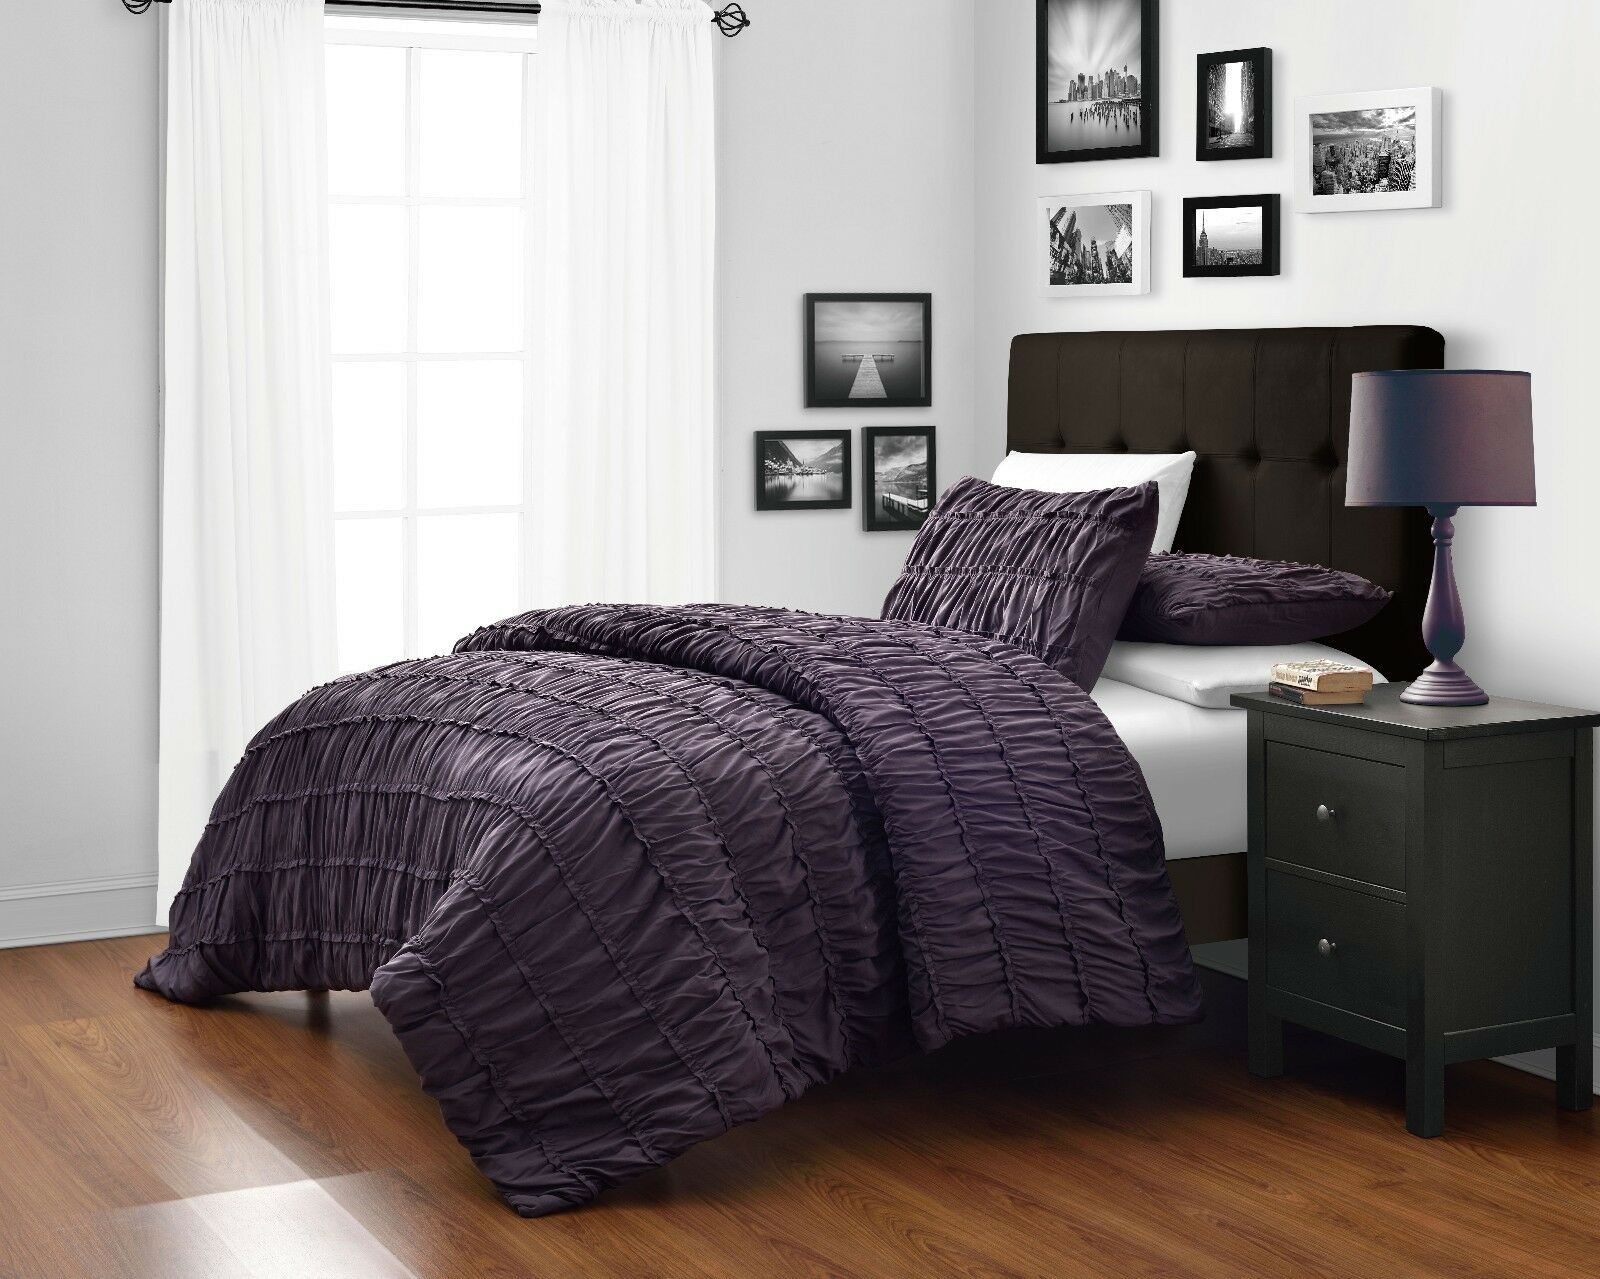 King size bed comforter sets   pinzon dark purple 3pc comforter set with  full  queen  king  cal king size bedPurple King Comforter Sets   Luxurious 7 piece Comforter Set King  . King Size Bedroom Comforter Sets. Home Design Ideas